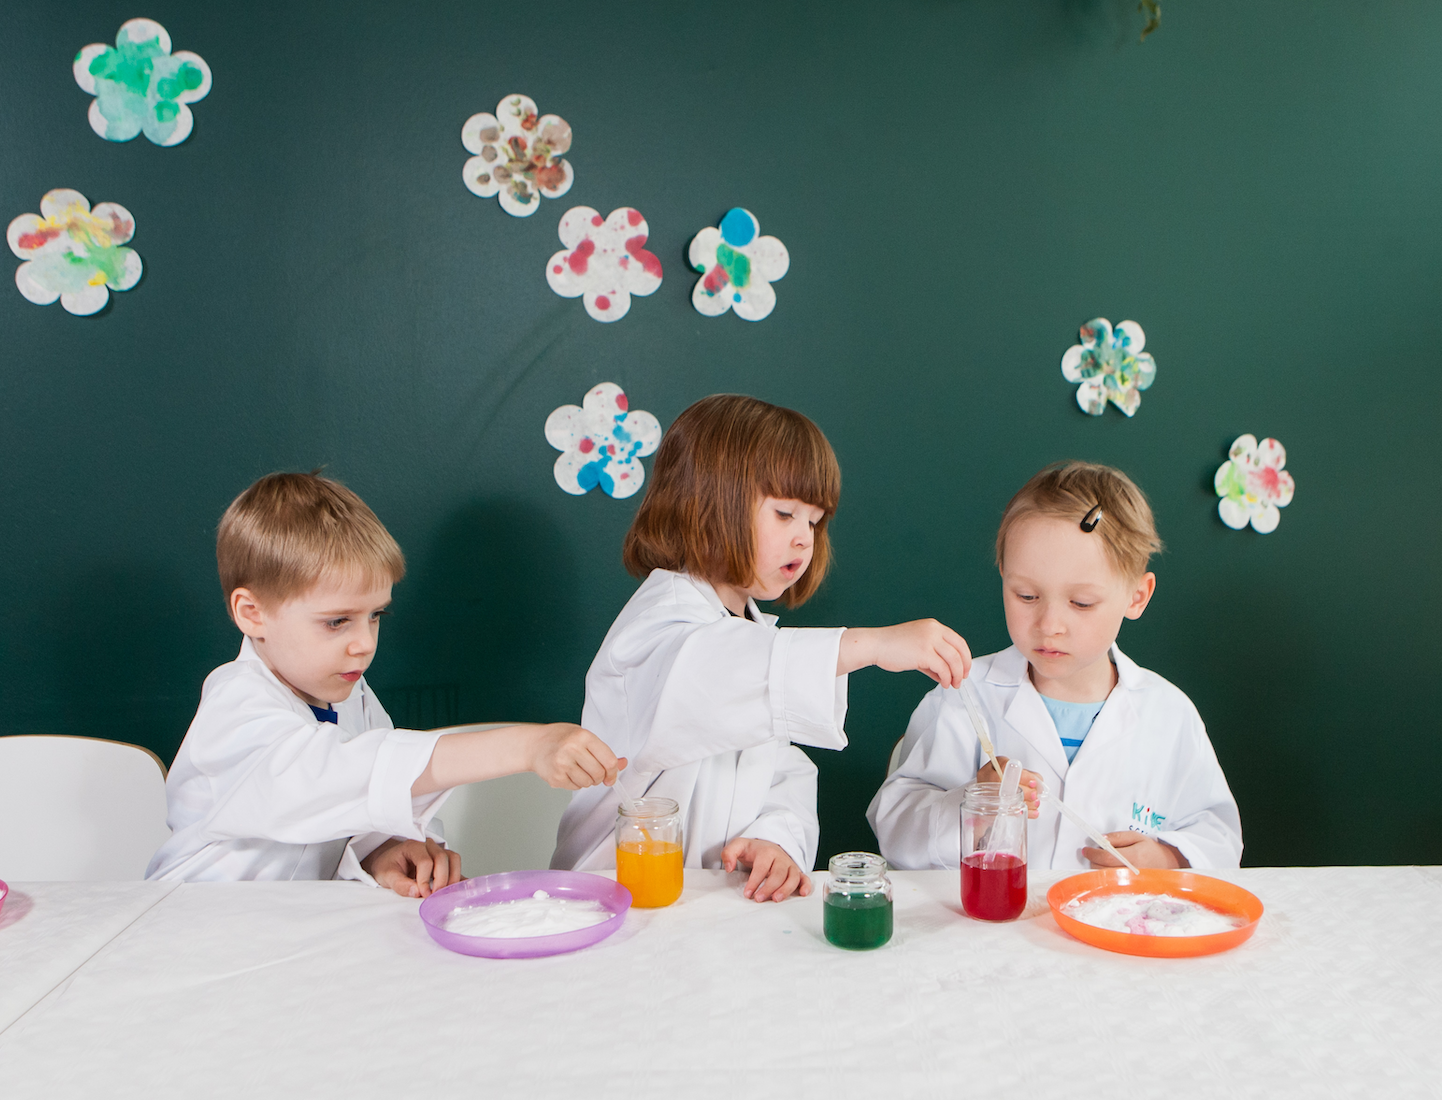 Kide Science, a Finnish science education company, has just closed its first deal in Kosovo